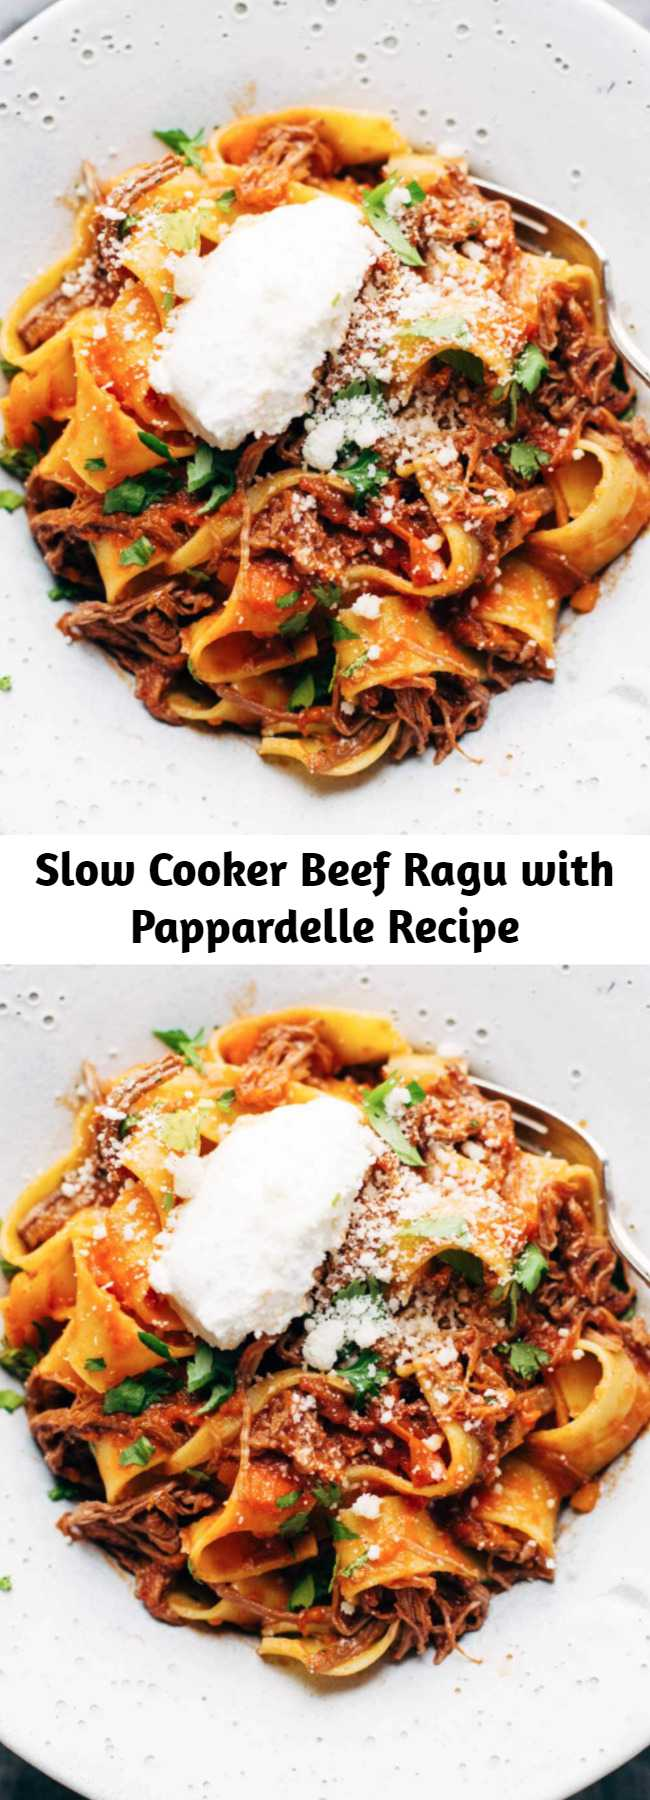 Slow Cooker Beef Ragu with Pappardelle Recipe - Easy comfort food #pasta #pappardelle #brunch